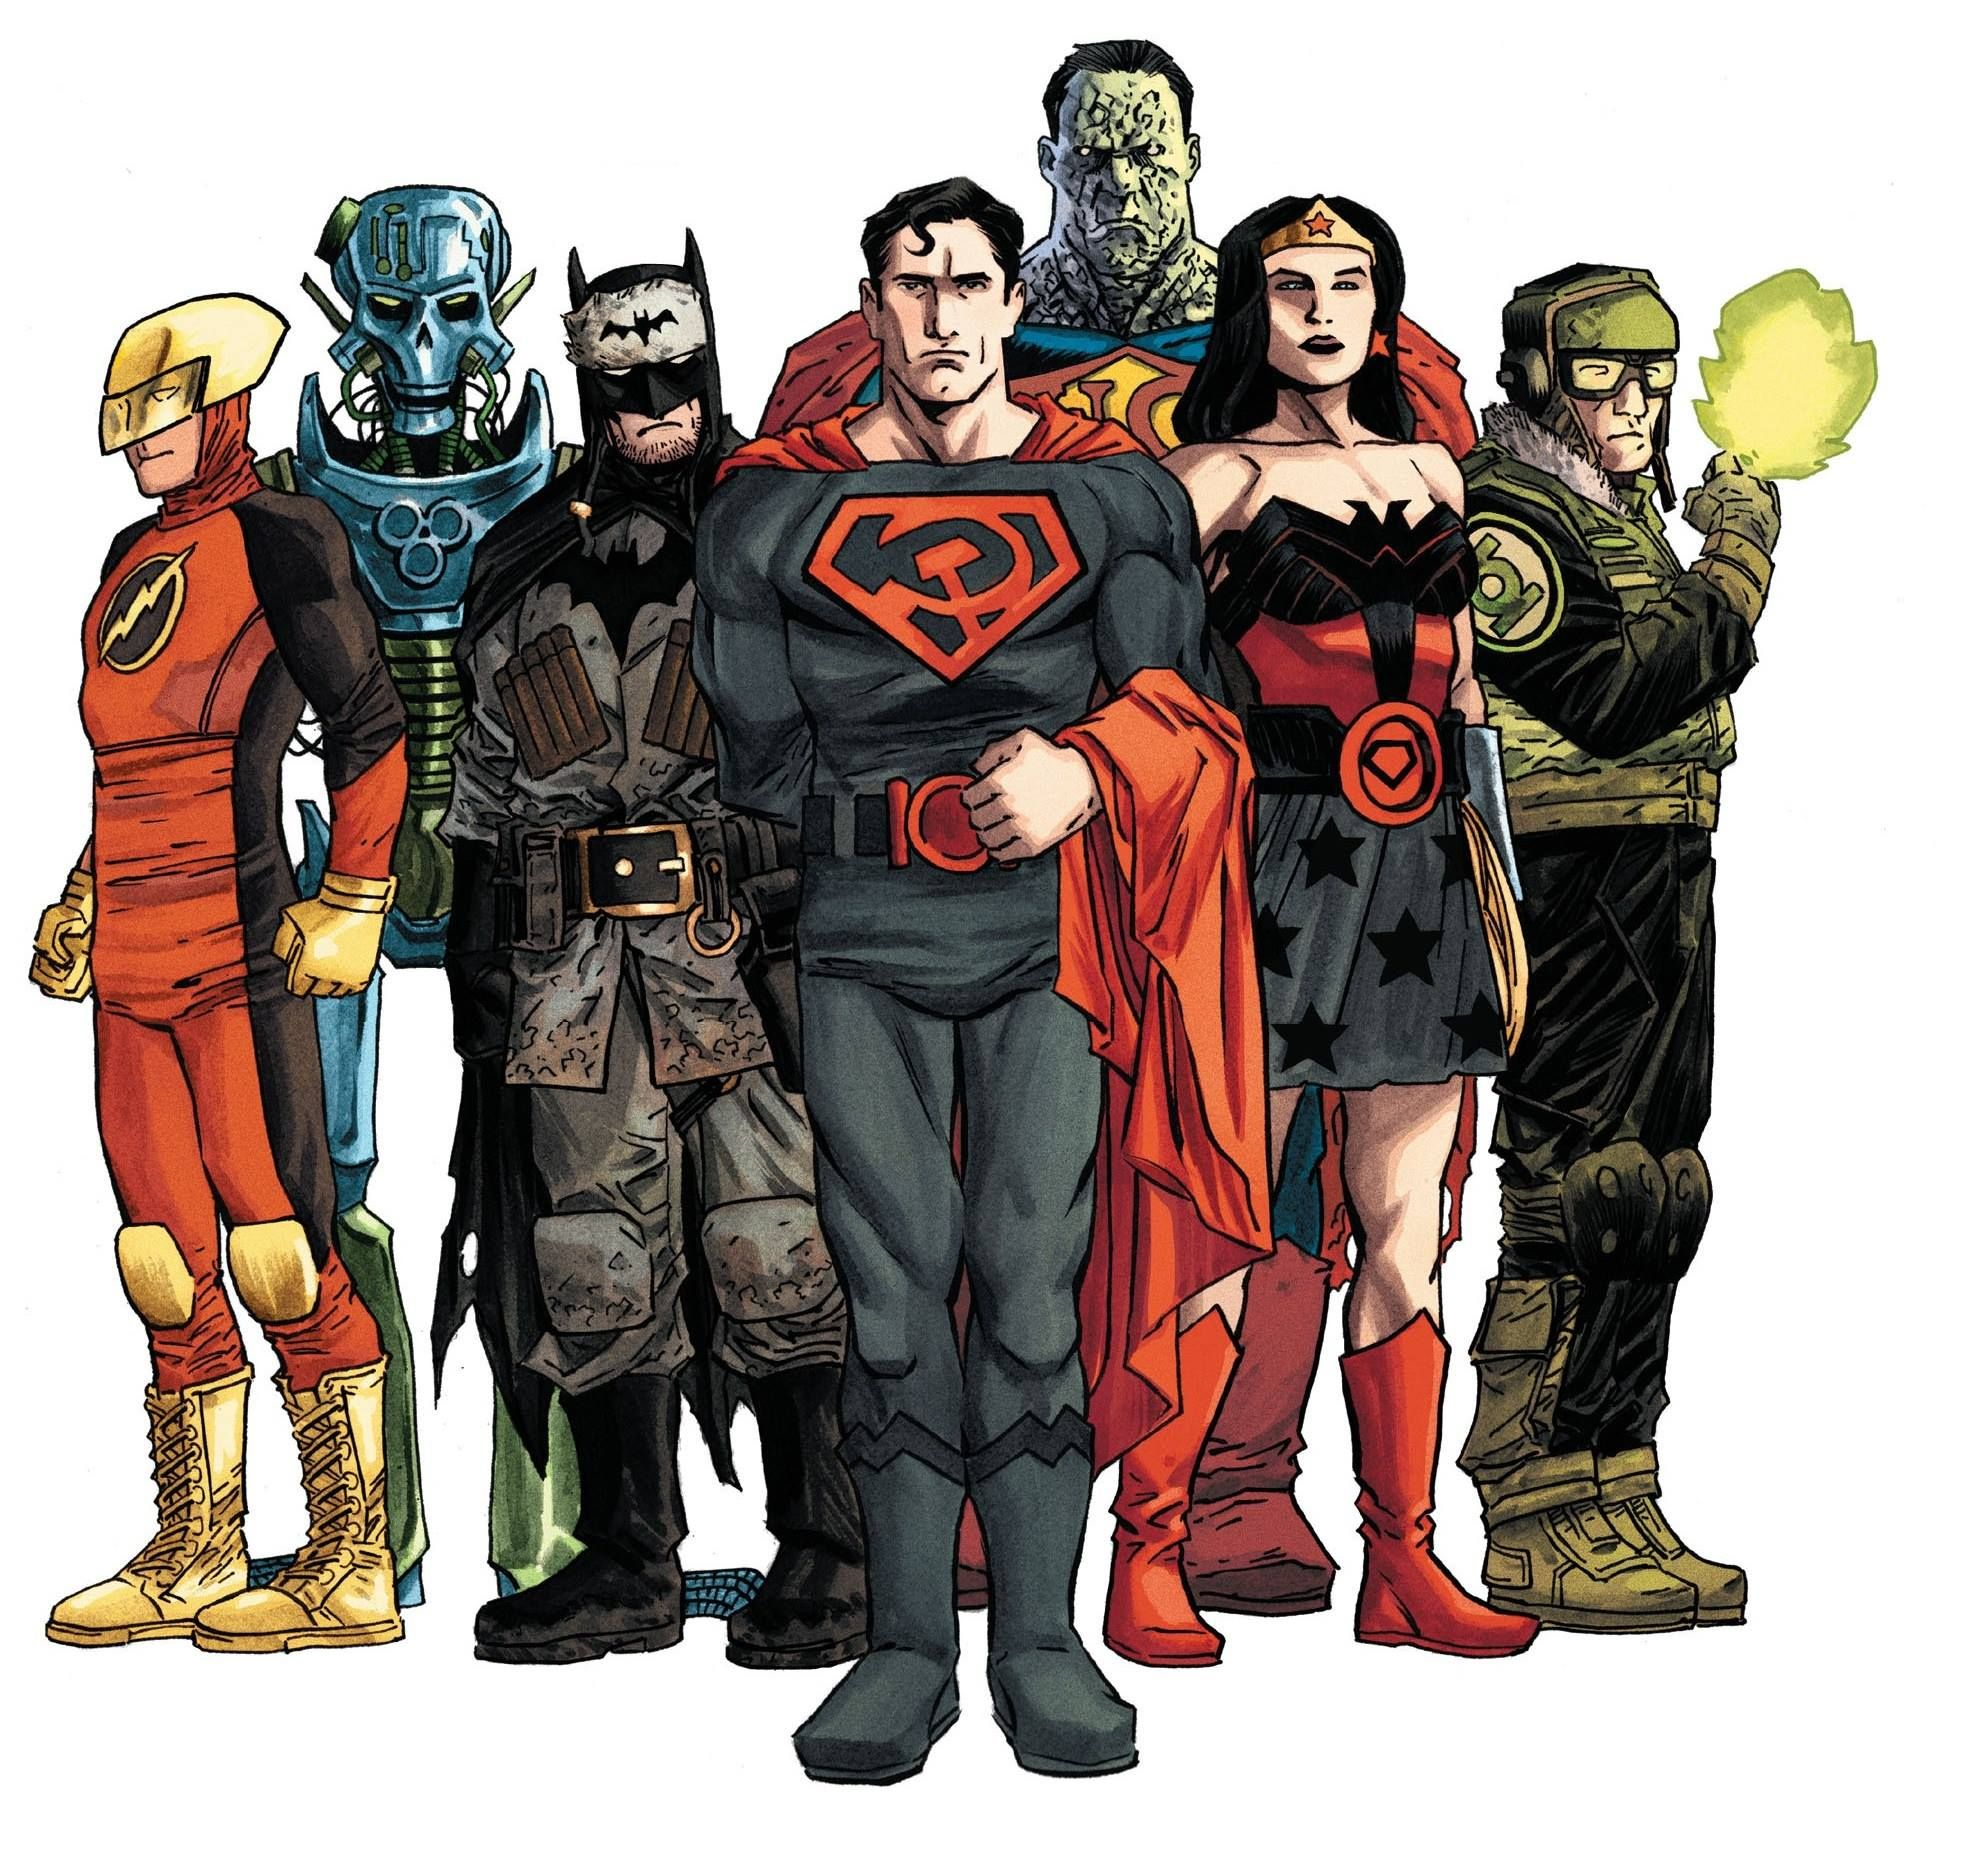 The Multiversity: Earth-29 by Declan Shalvey, colours by Jordie Bellaire *